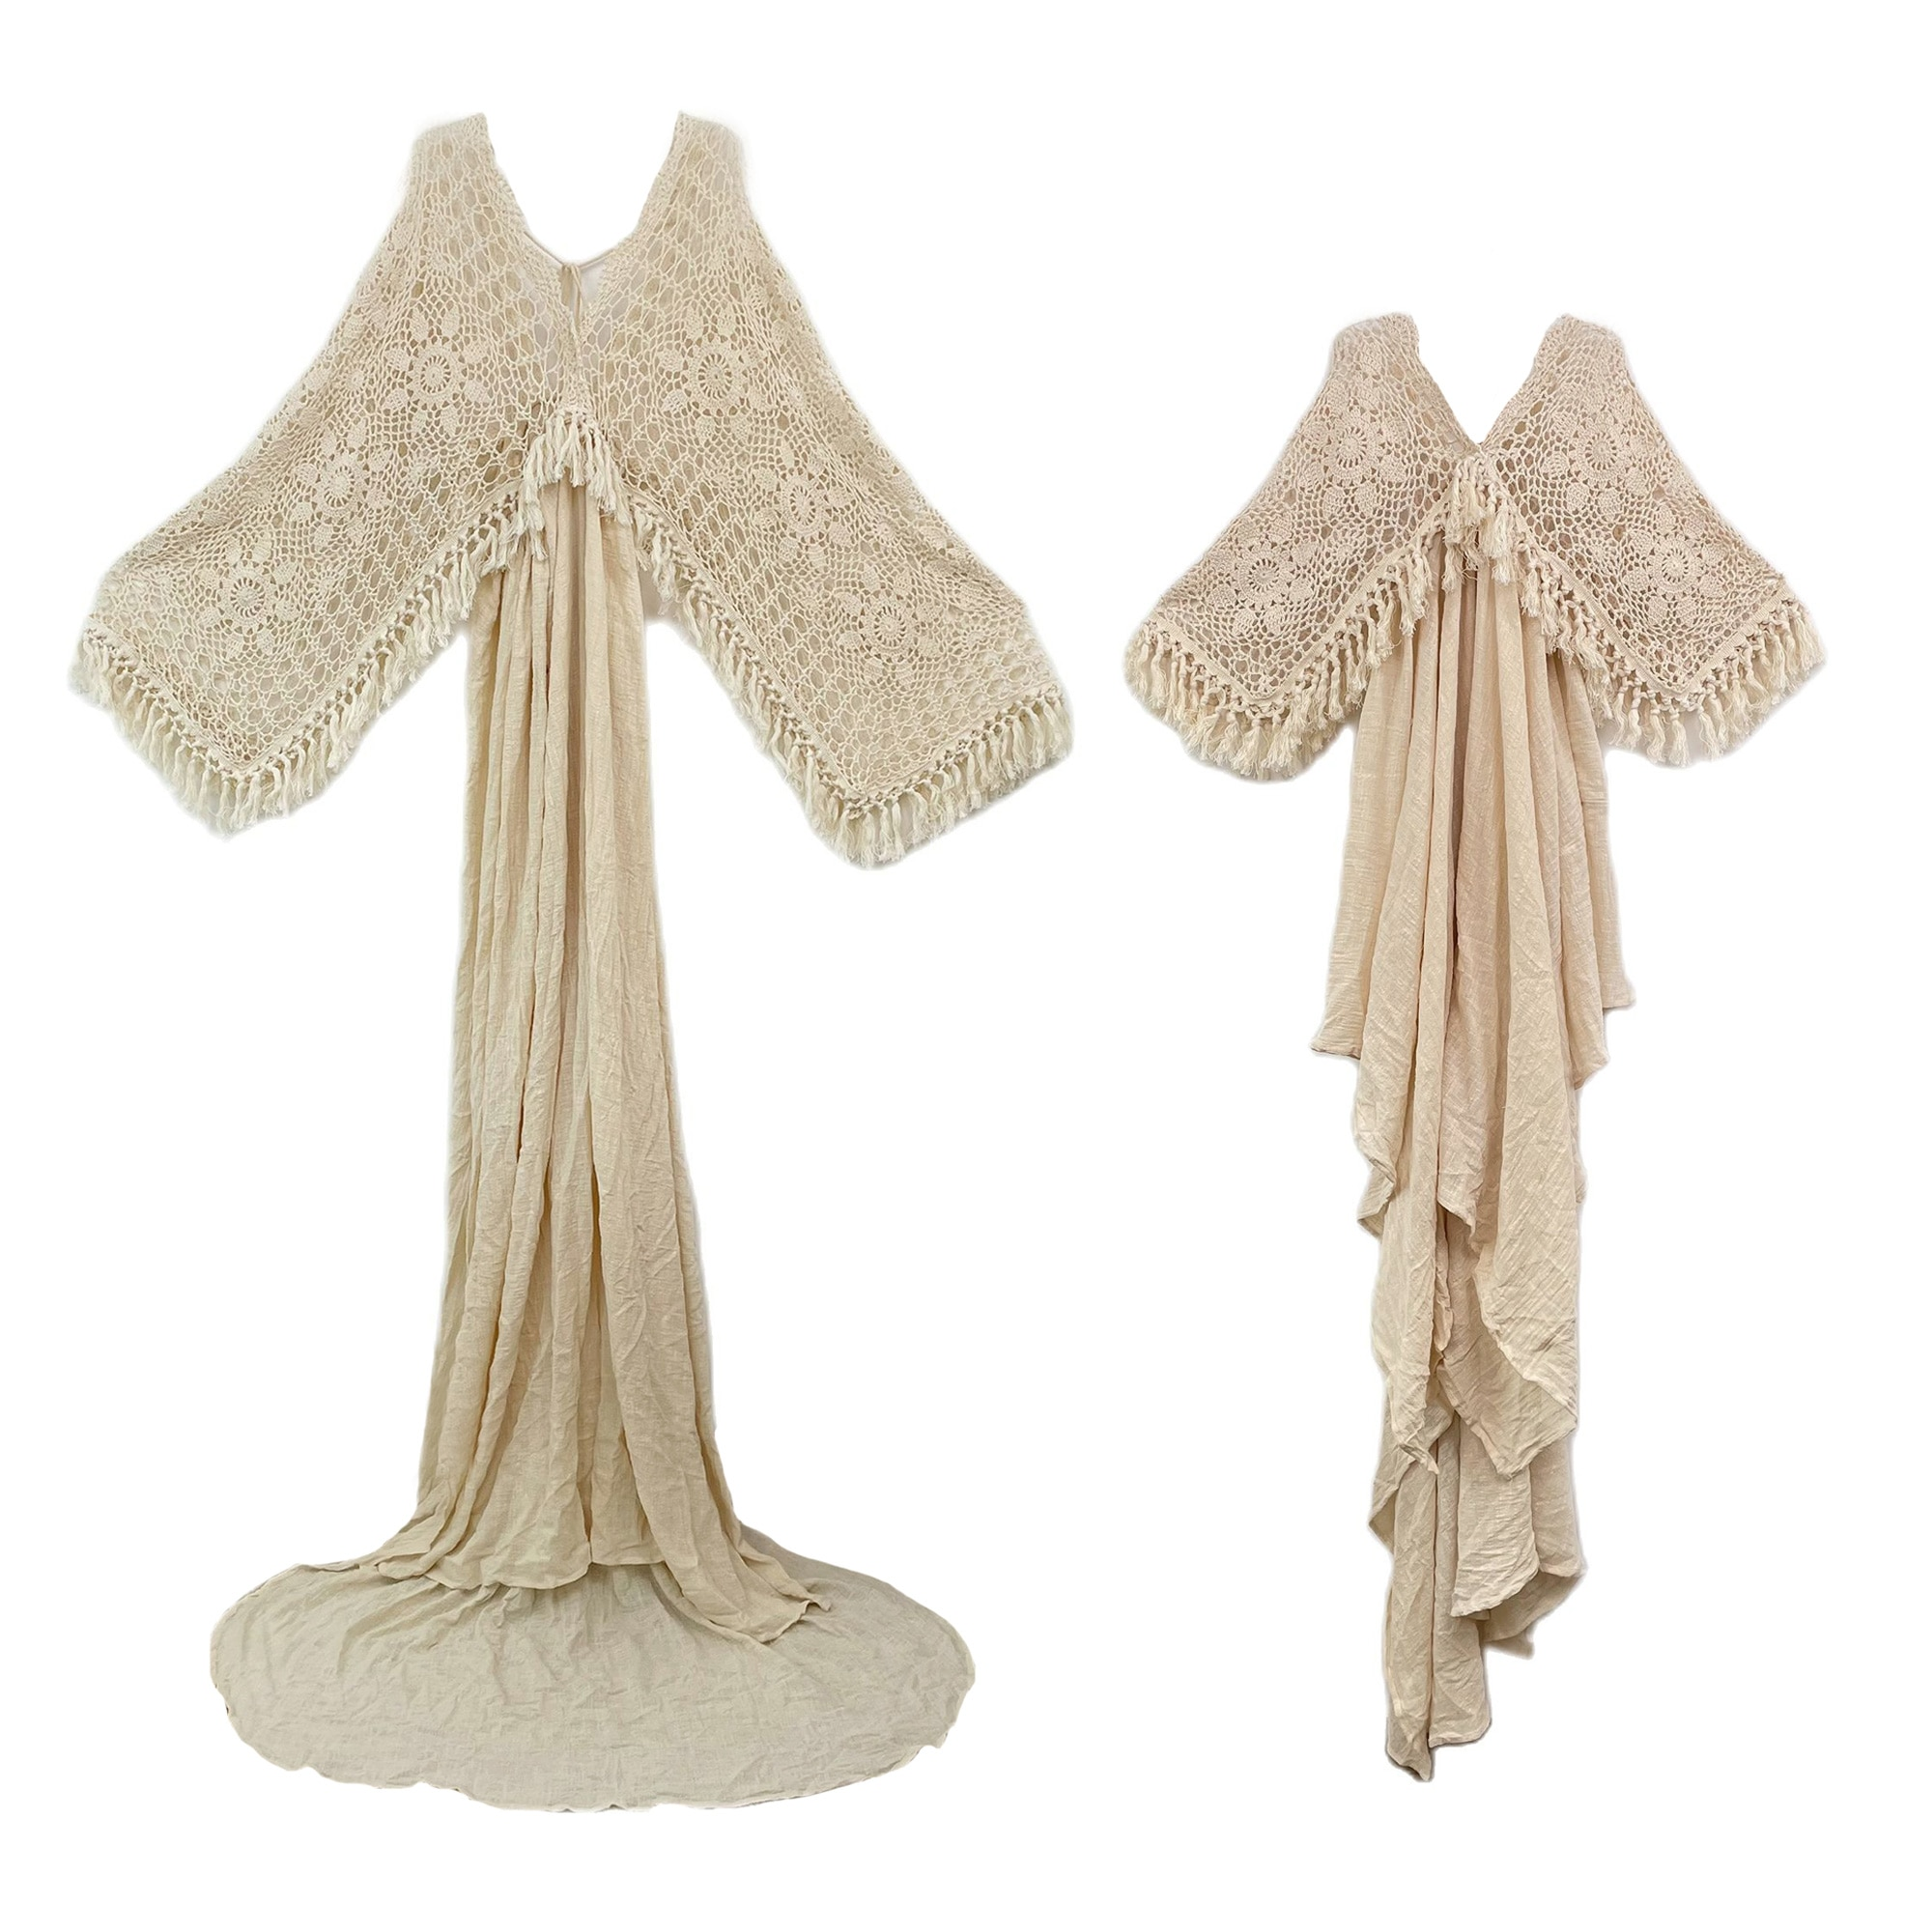 Photo Shoot Set Vintage Boho Cotton Mom and Daughter Robe Long Dresses Evening Party Costume for Women Photography Accessories